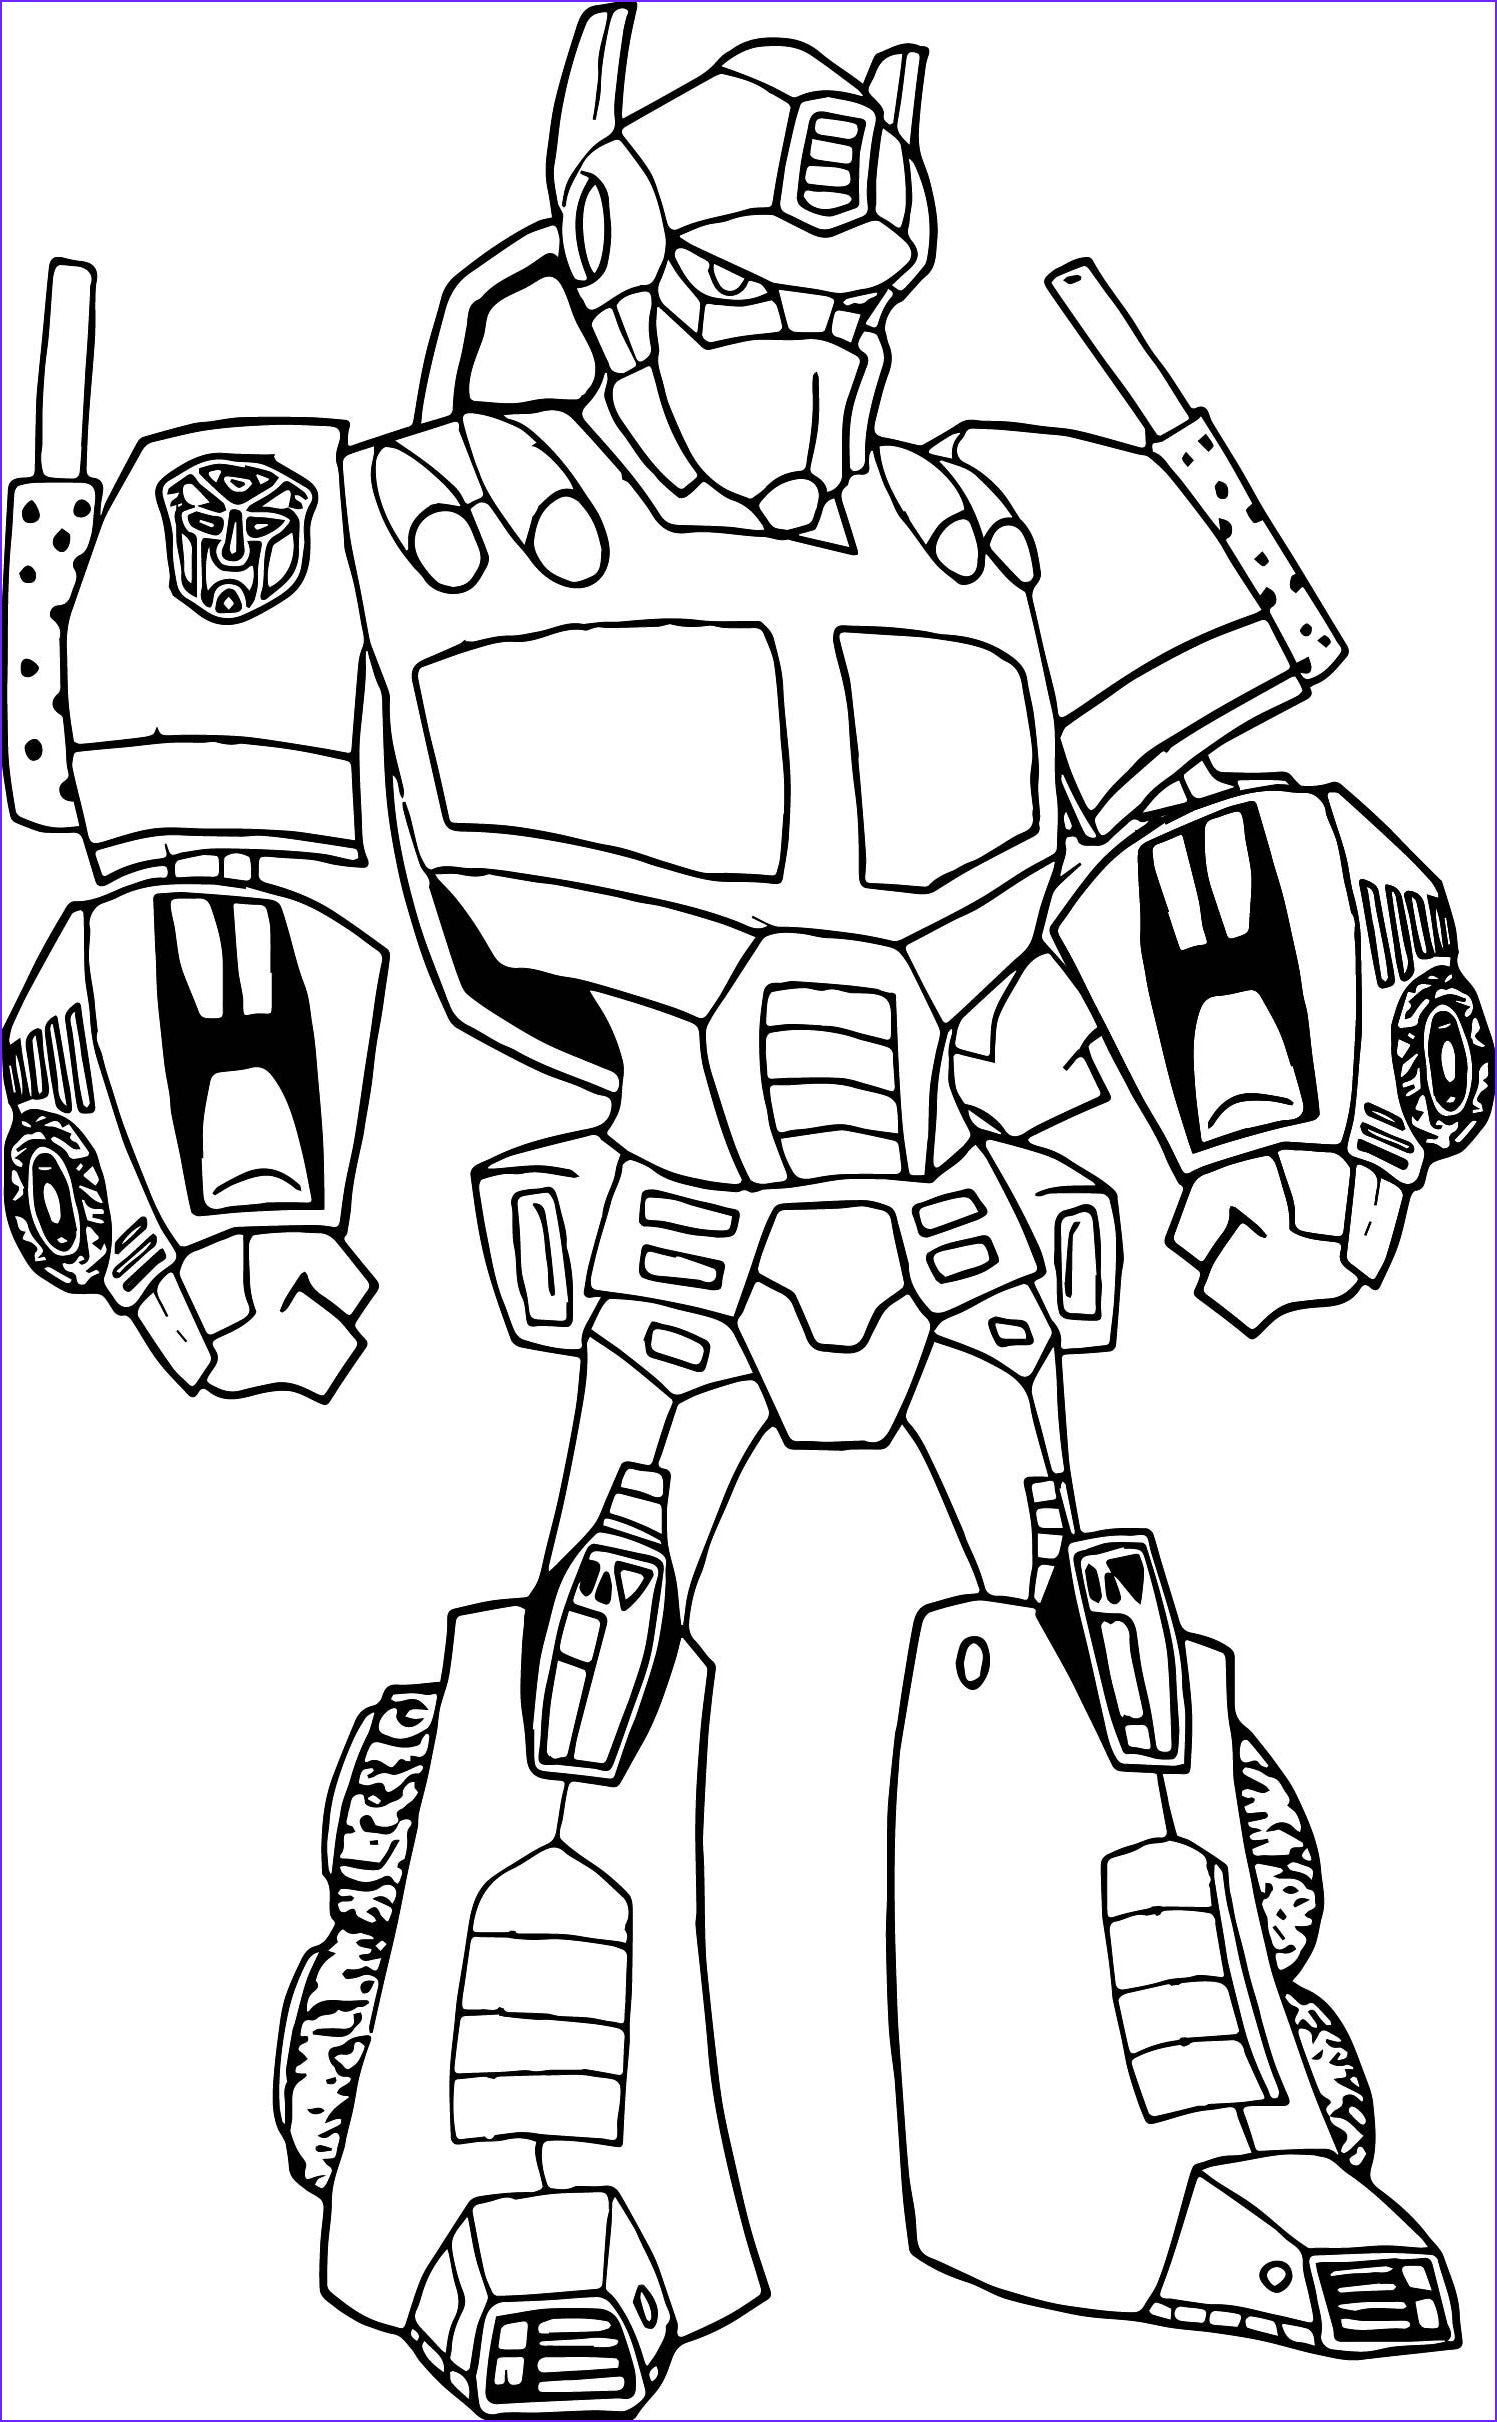 Robot Coloring Pages Luxury Photos Transformers Optimus Prime Robot Coloring Page Coloring